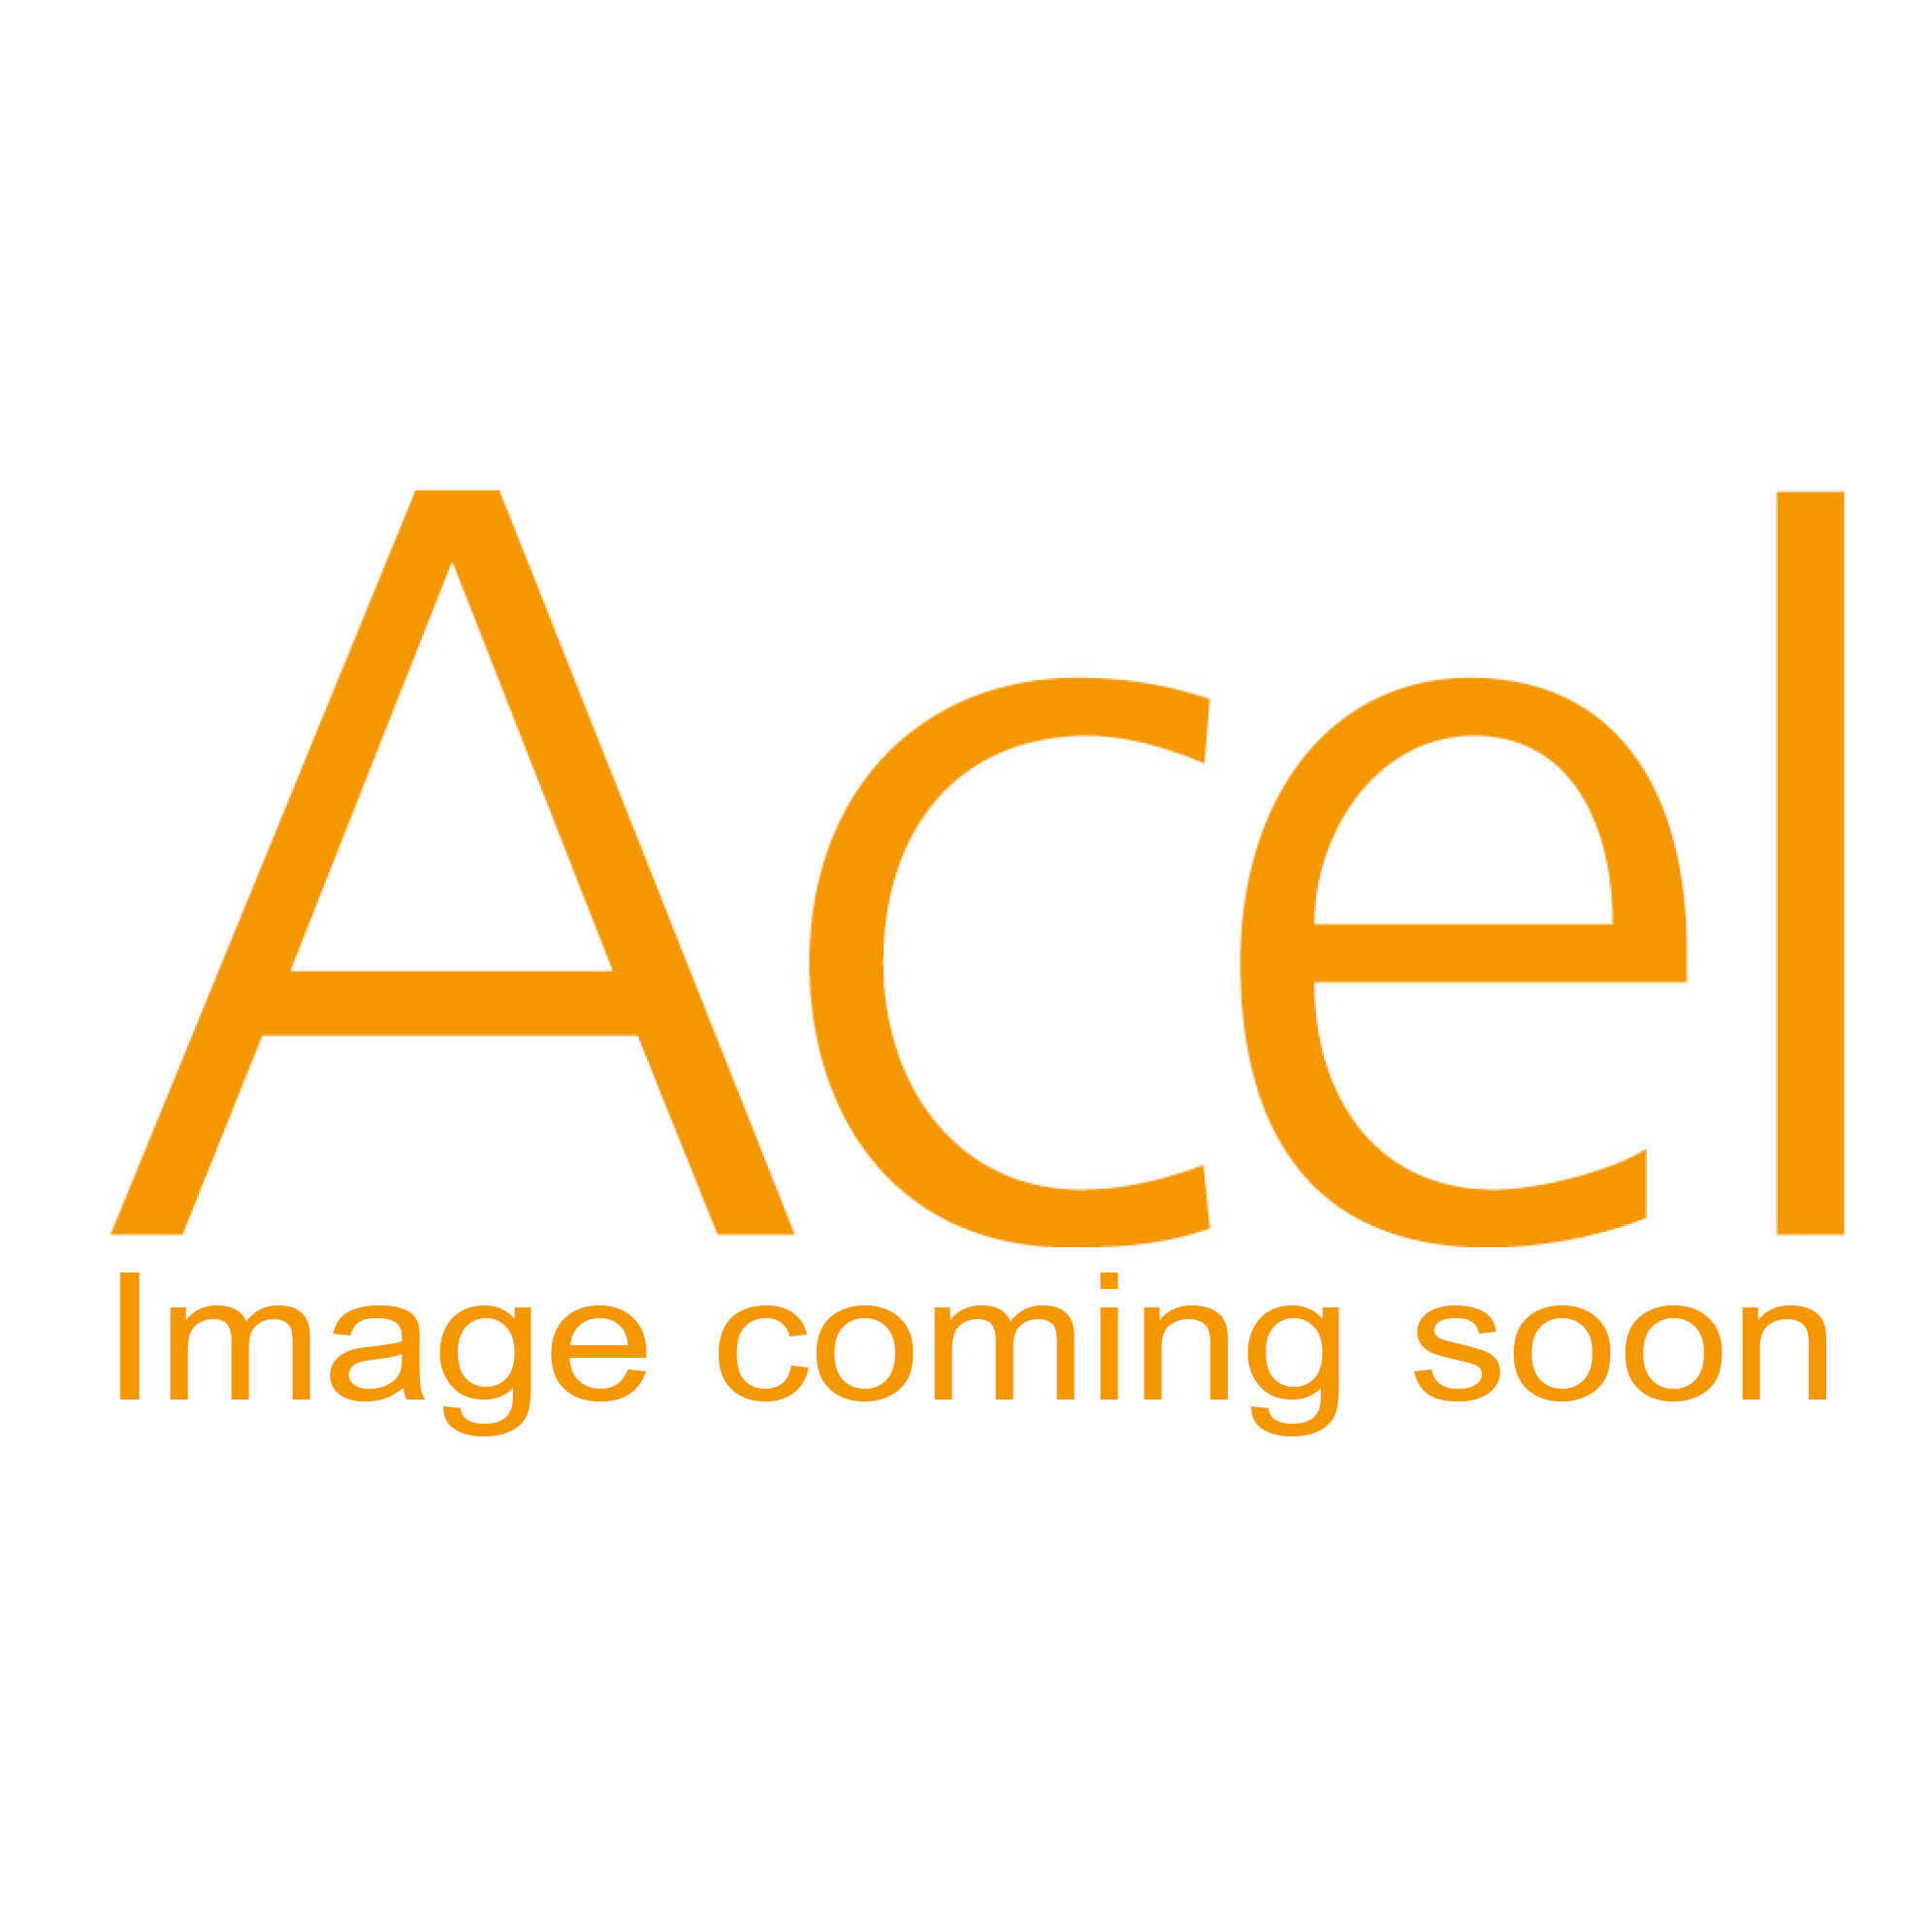 Rigid Self Adhesive PVC Labels - No smoking entrance sign - 150 x 225mm Pk1